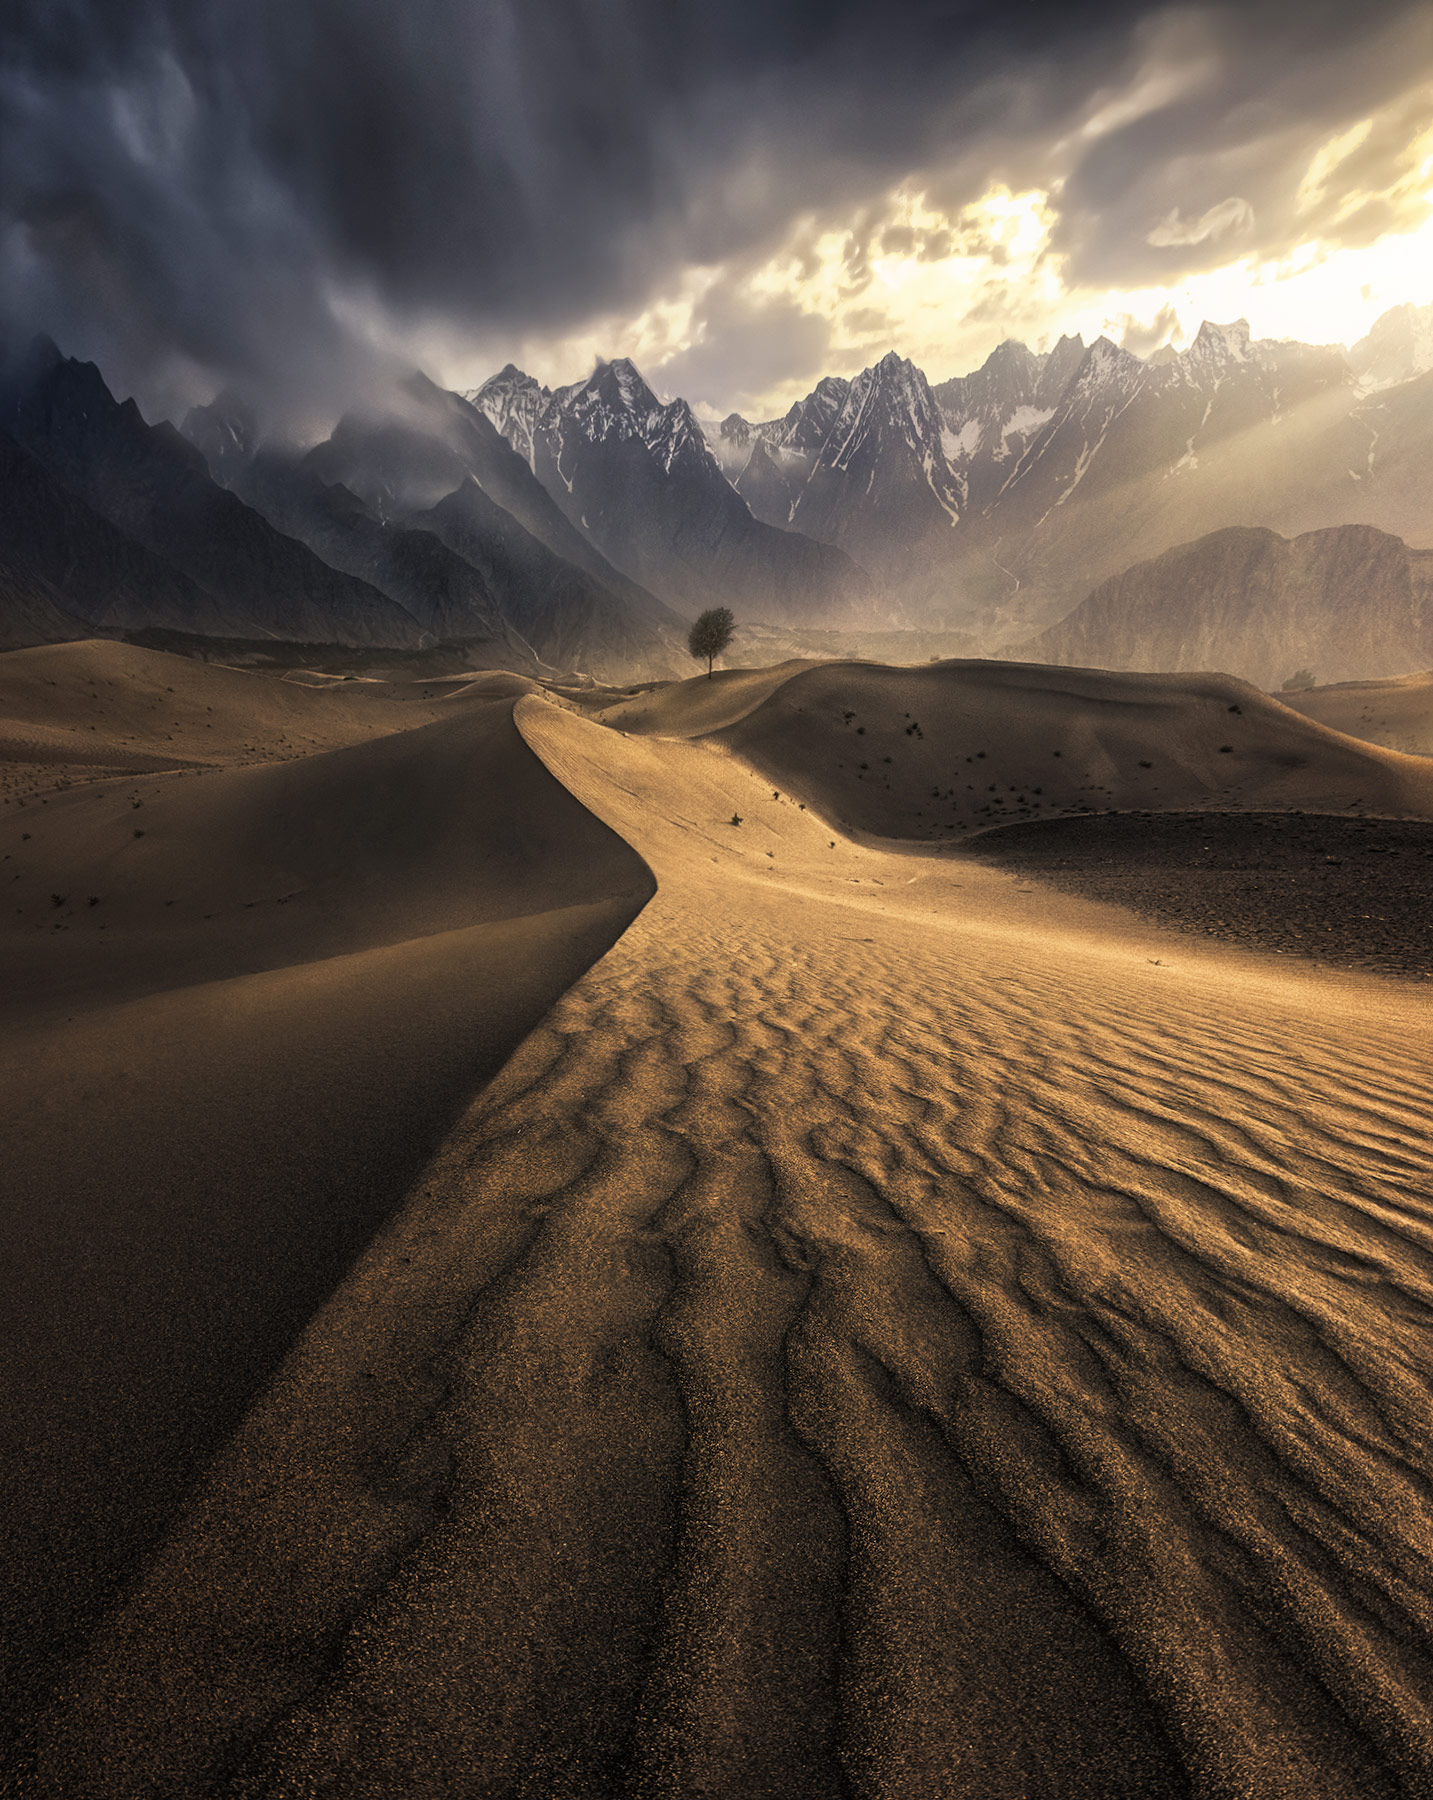 Desert sands reach across this Himalayan valley towards a lone tree bathed in sunset light at the foot of high peaks.